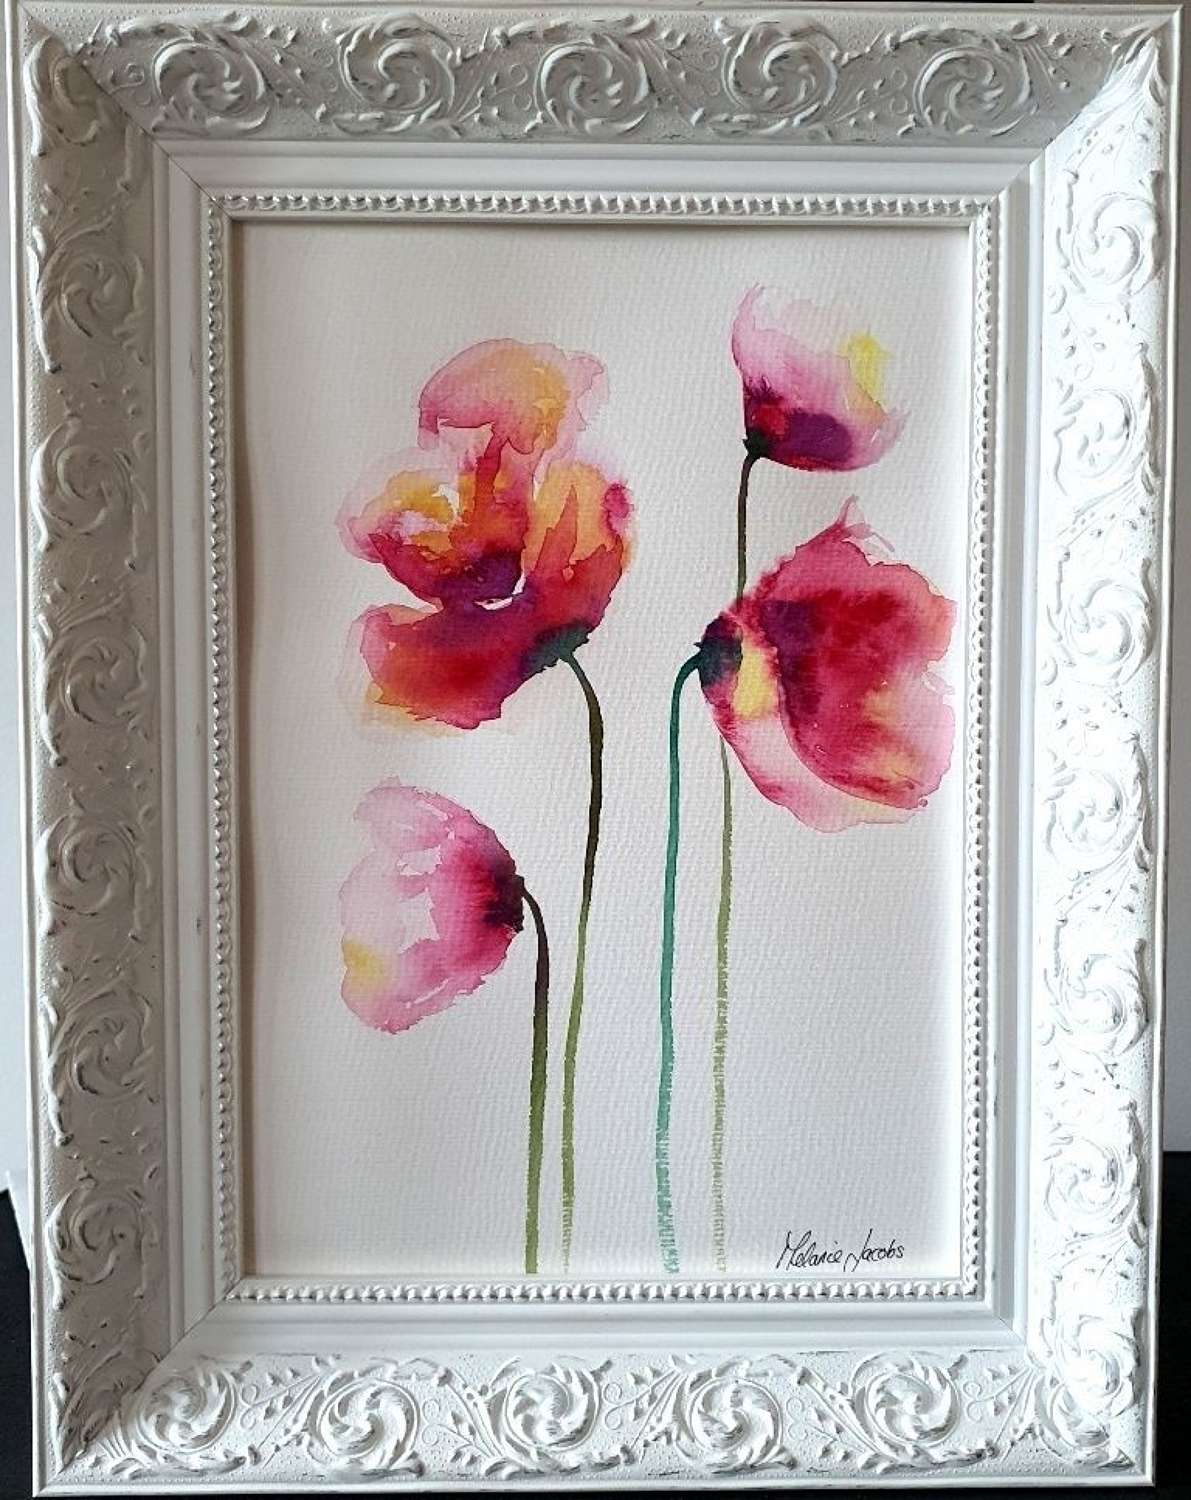 Hope In My Heart - Original Watercolour Painting by Melanie Jacobs